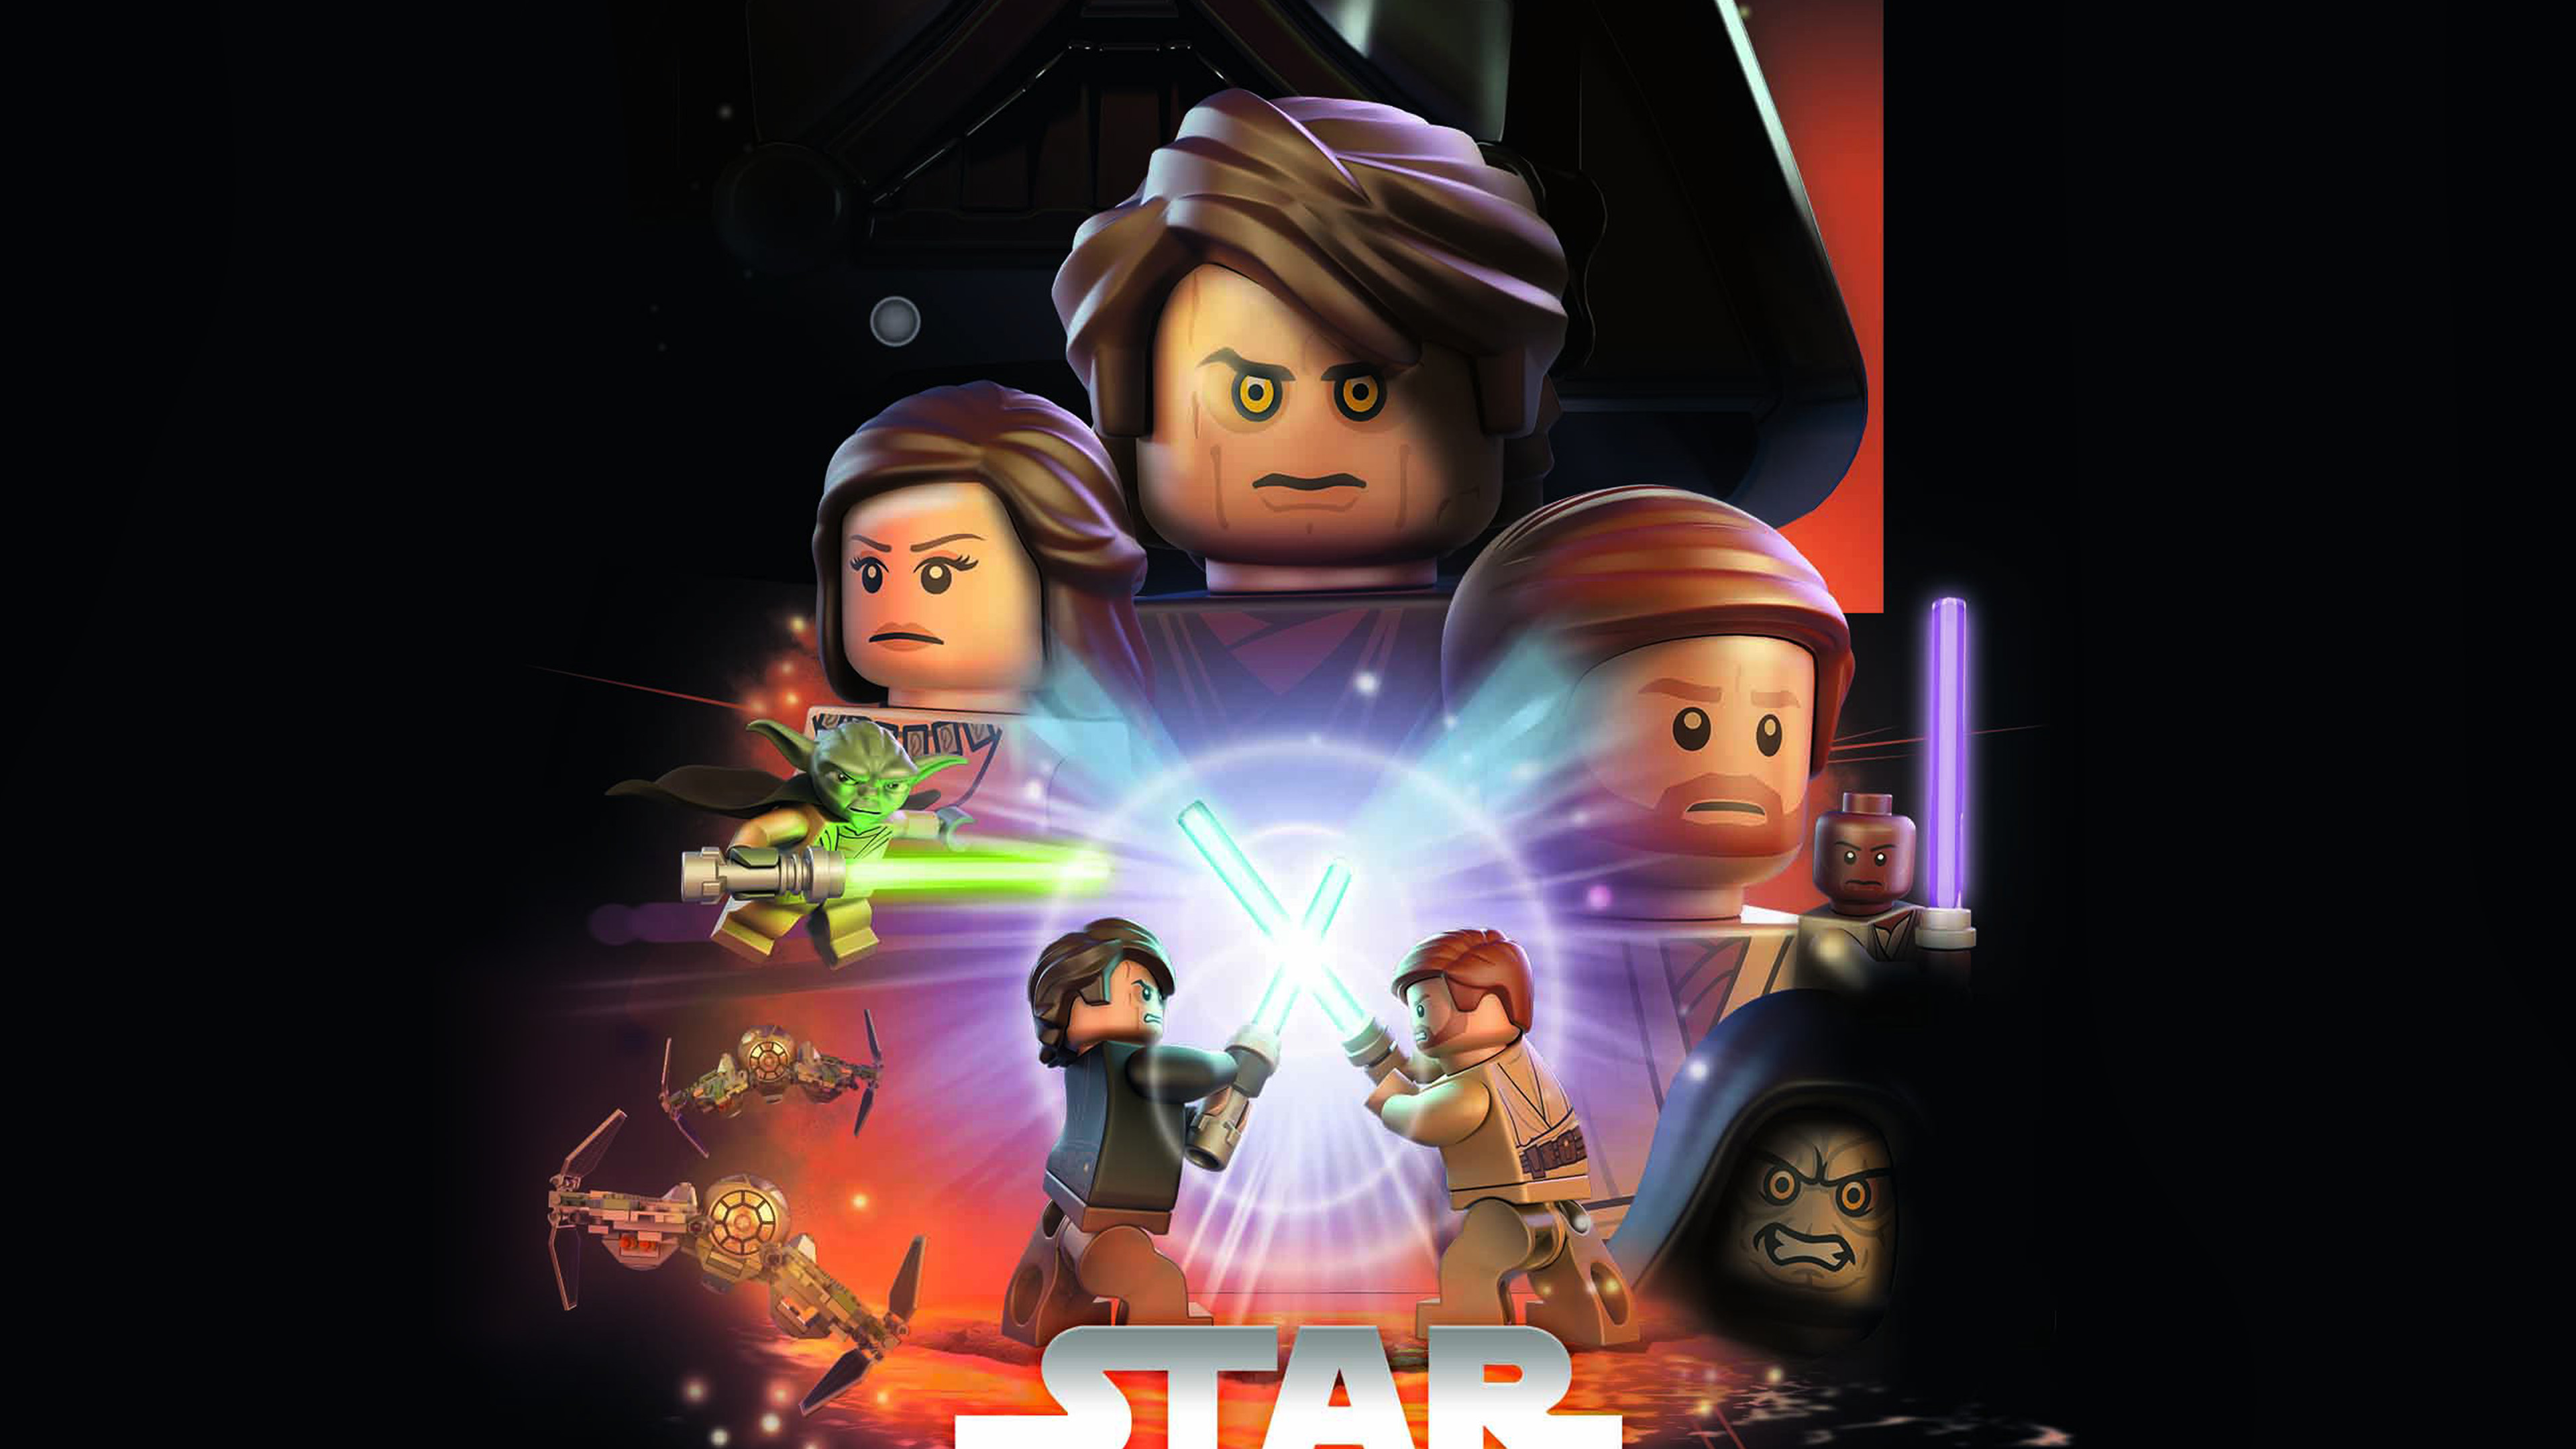 Ap22 Starwars Lego Episode 3 Revenge Of The Sith Art Film Wallpaper